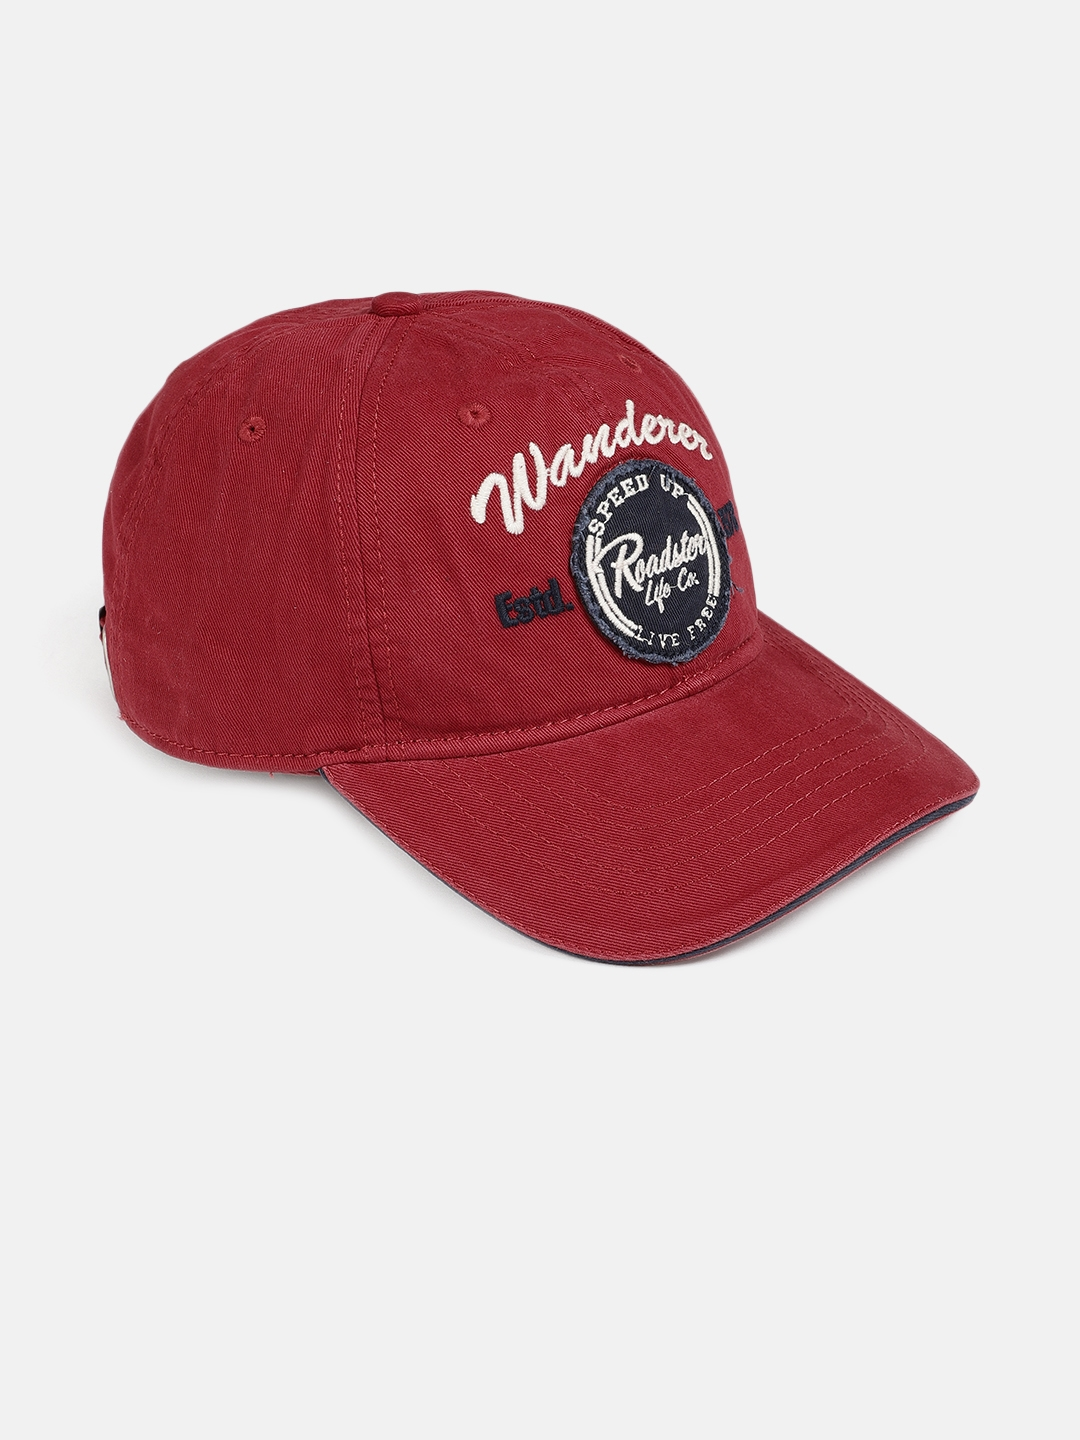 0dfeaed6336204 Buy Roadster Unisex Maroon Embroidered Baseball Cap - Caps for ...